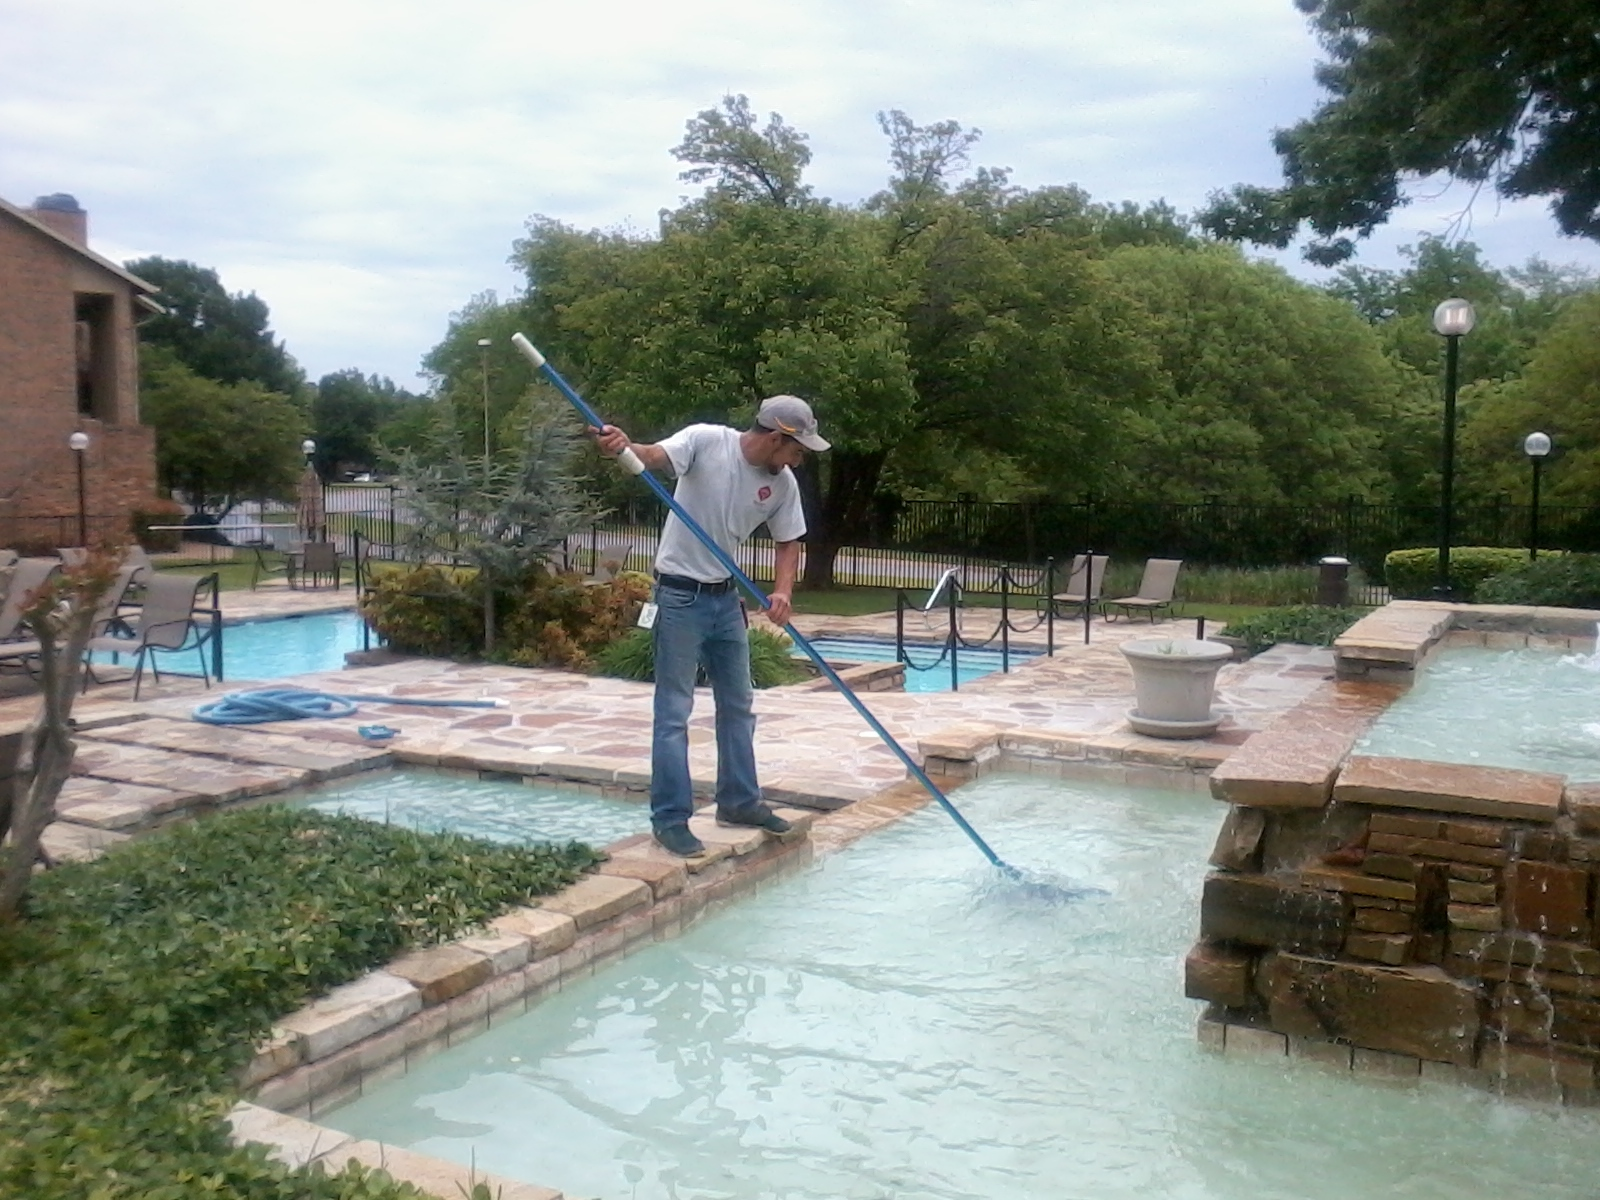 We offer full-service pool care so you can focus on your backyard vacation.